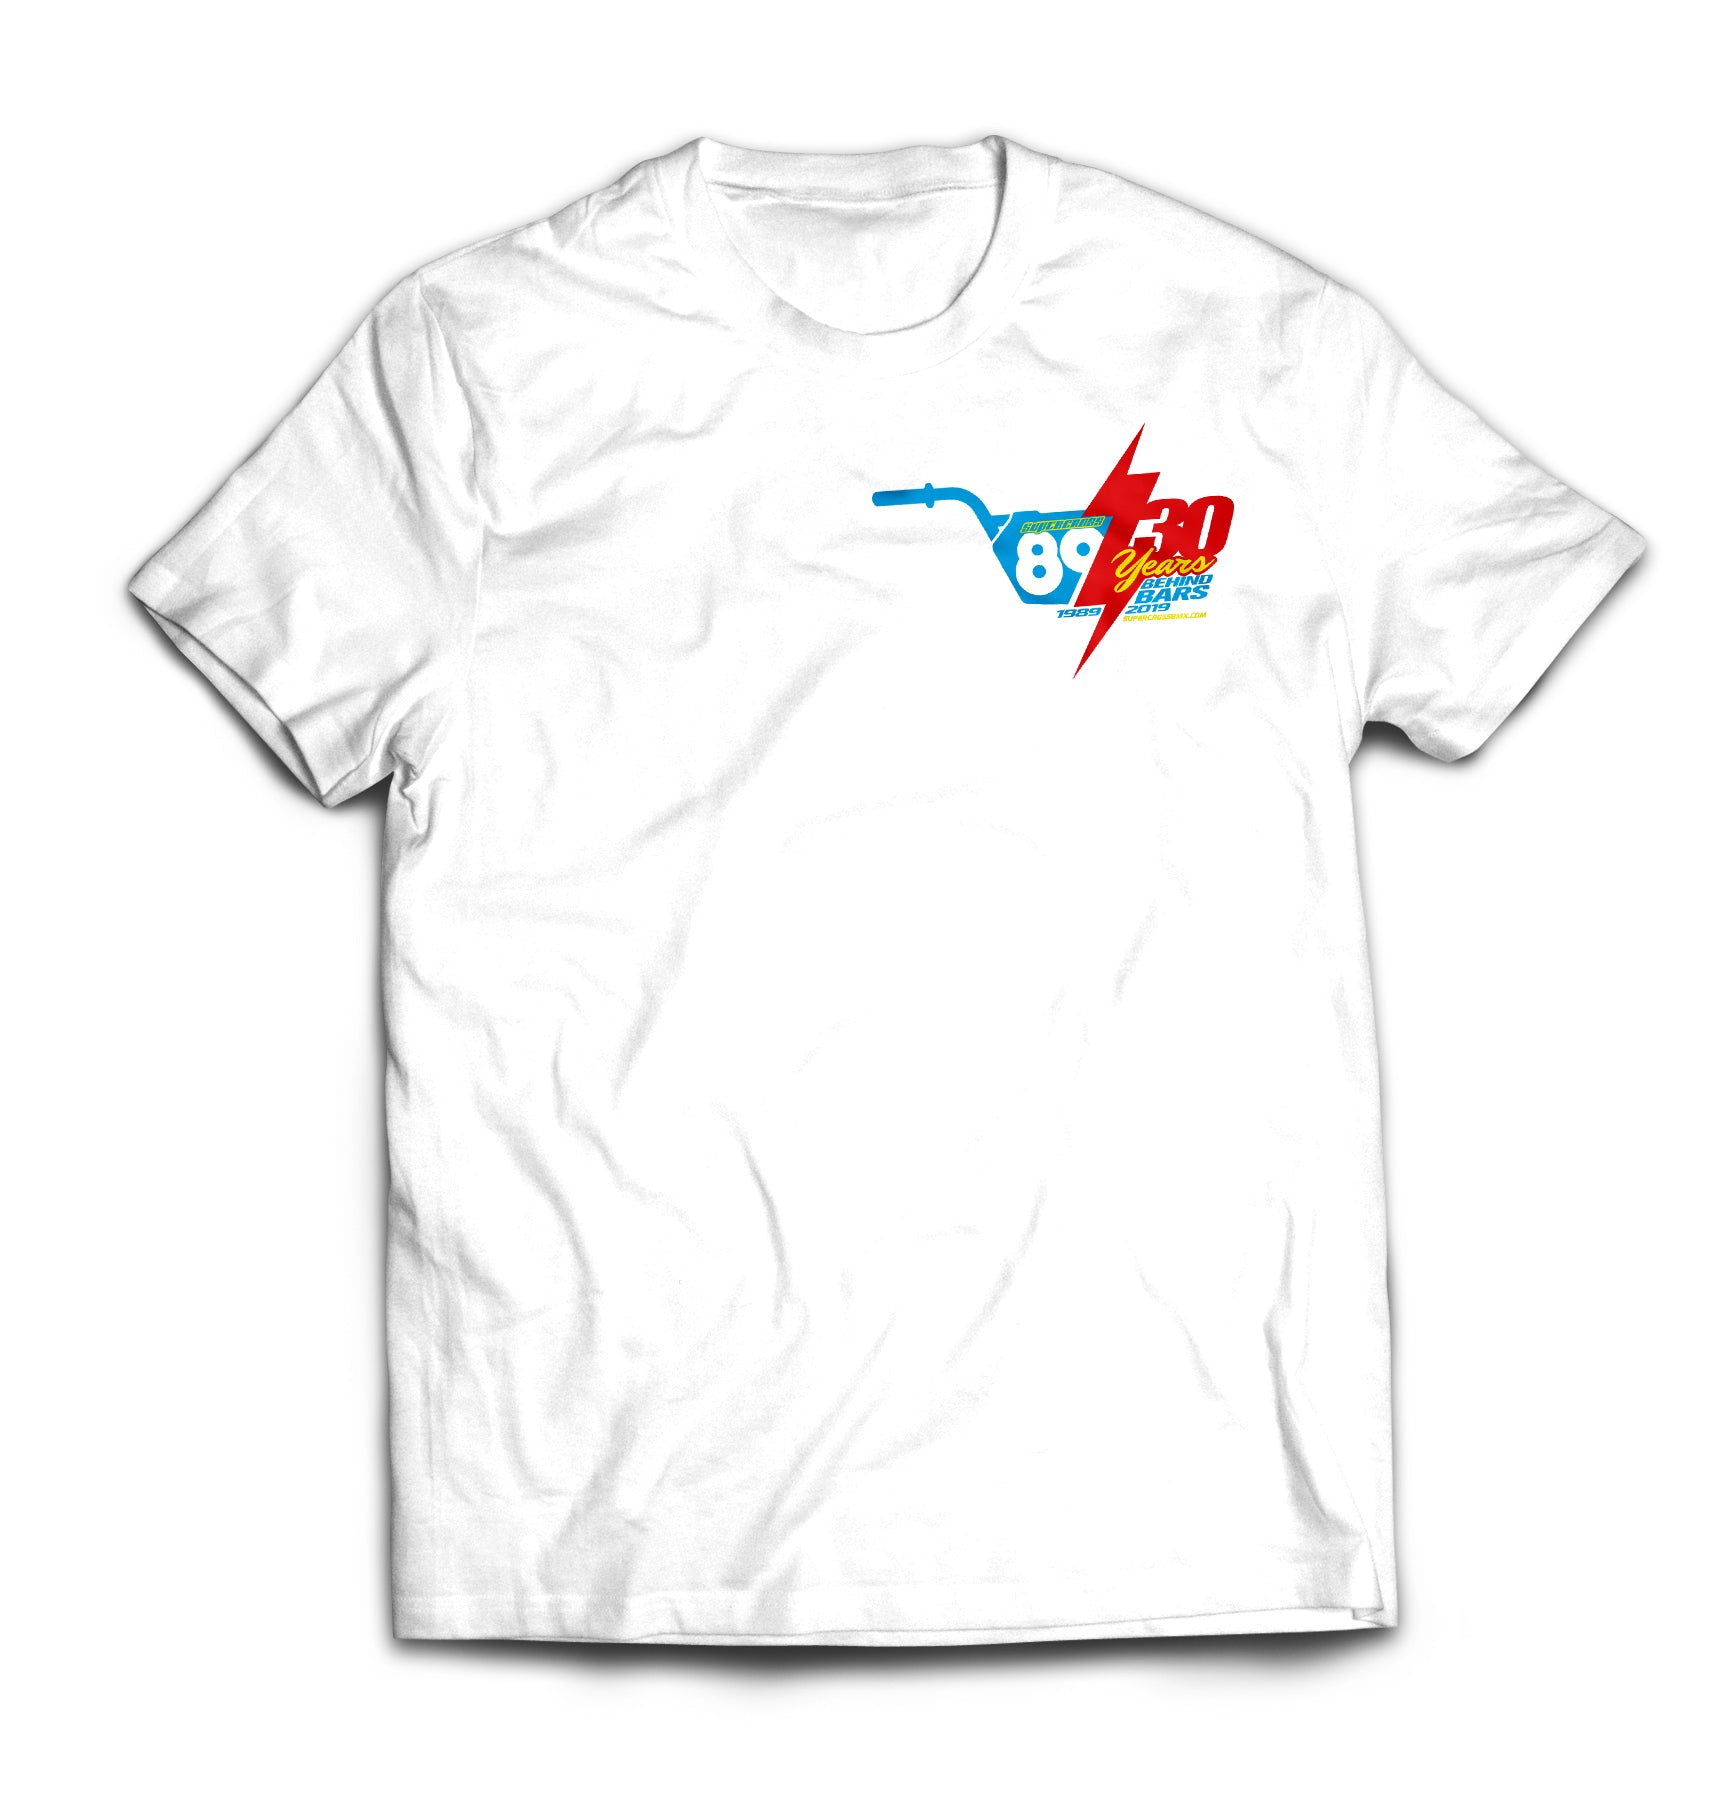 Supercross BMX | Retro Jersey Style T-shirt - Supercross BMX - BMX Racing